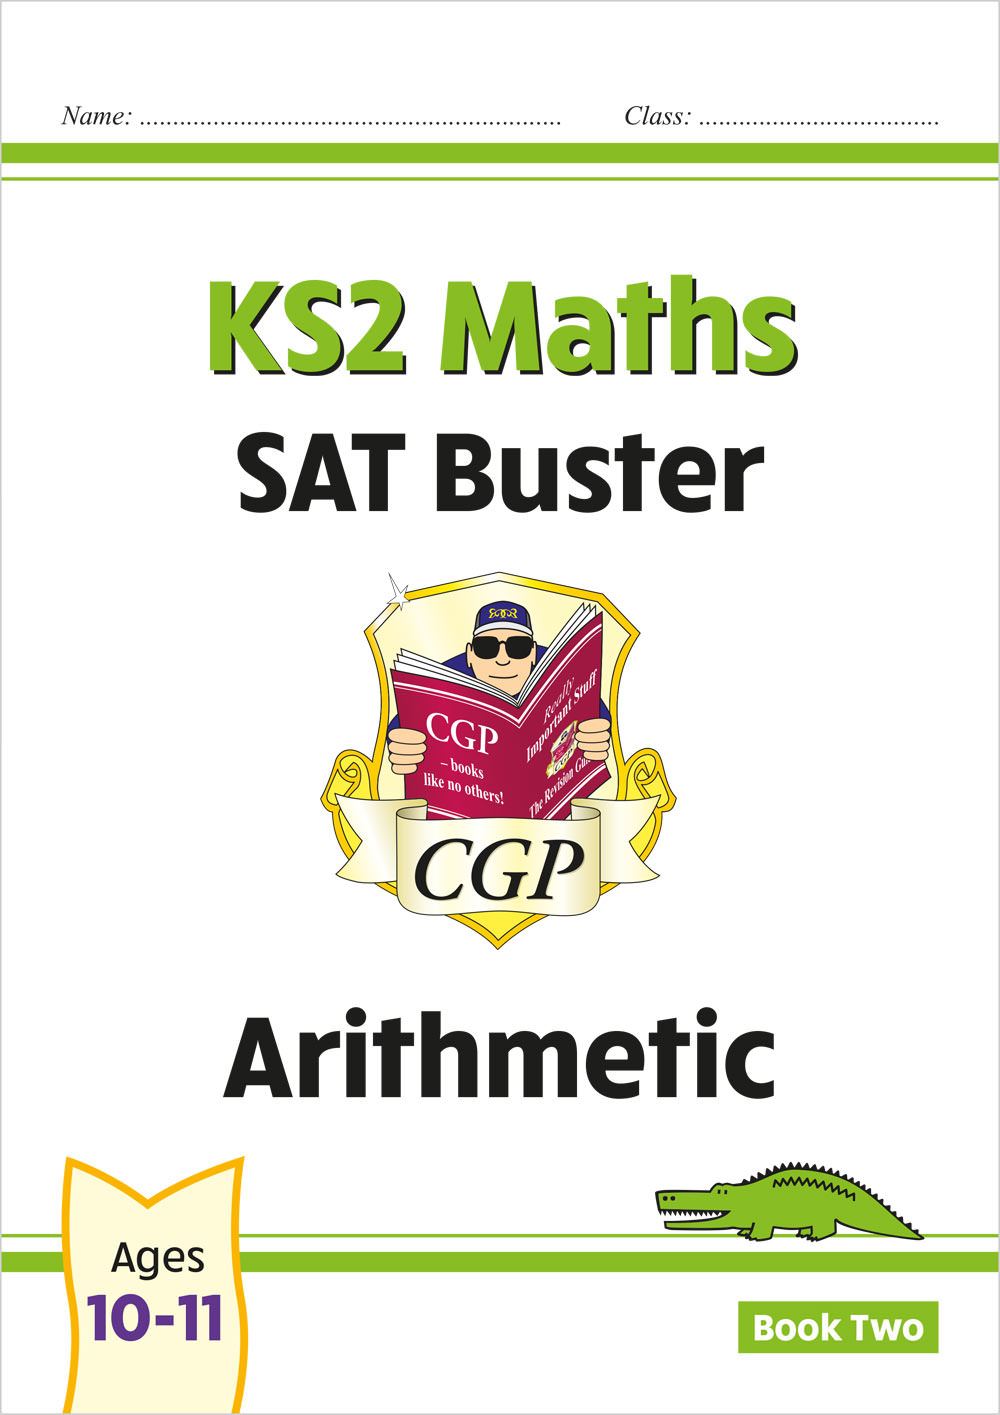 M6ARI222 - New KS2 Maths SAT Buster: Arithmetic - Book 2